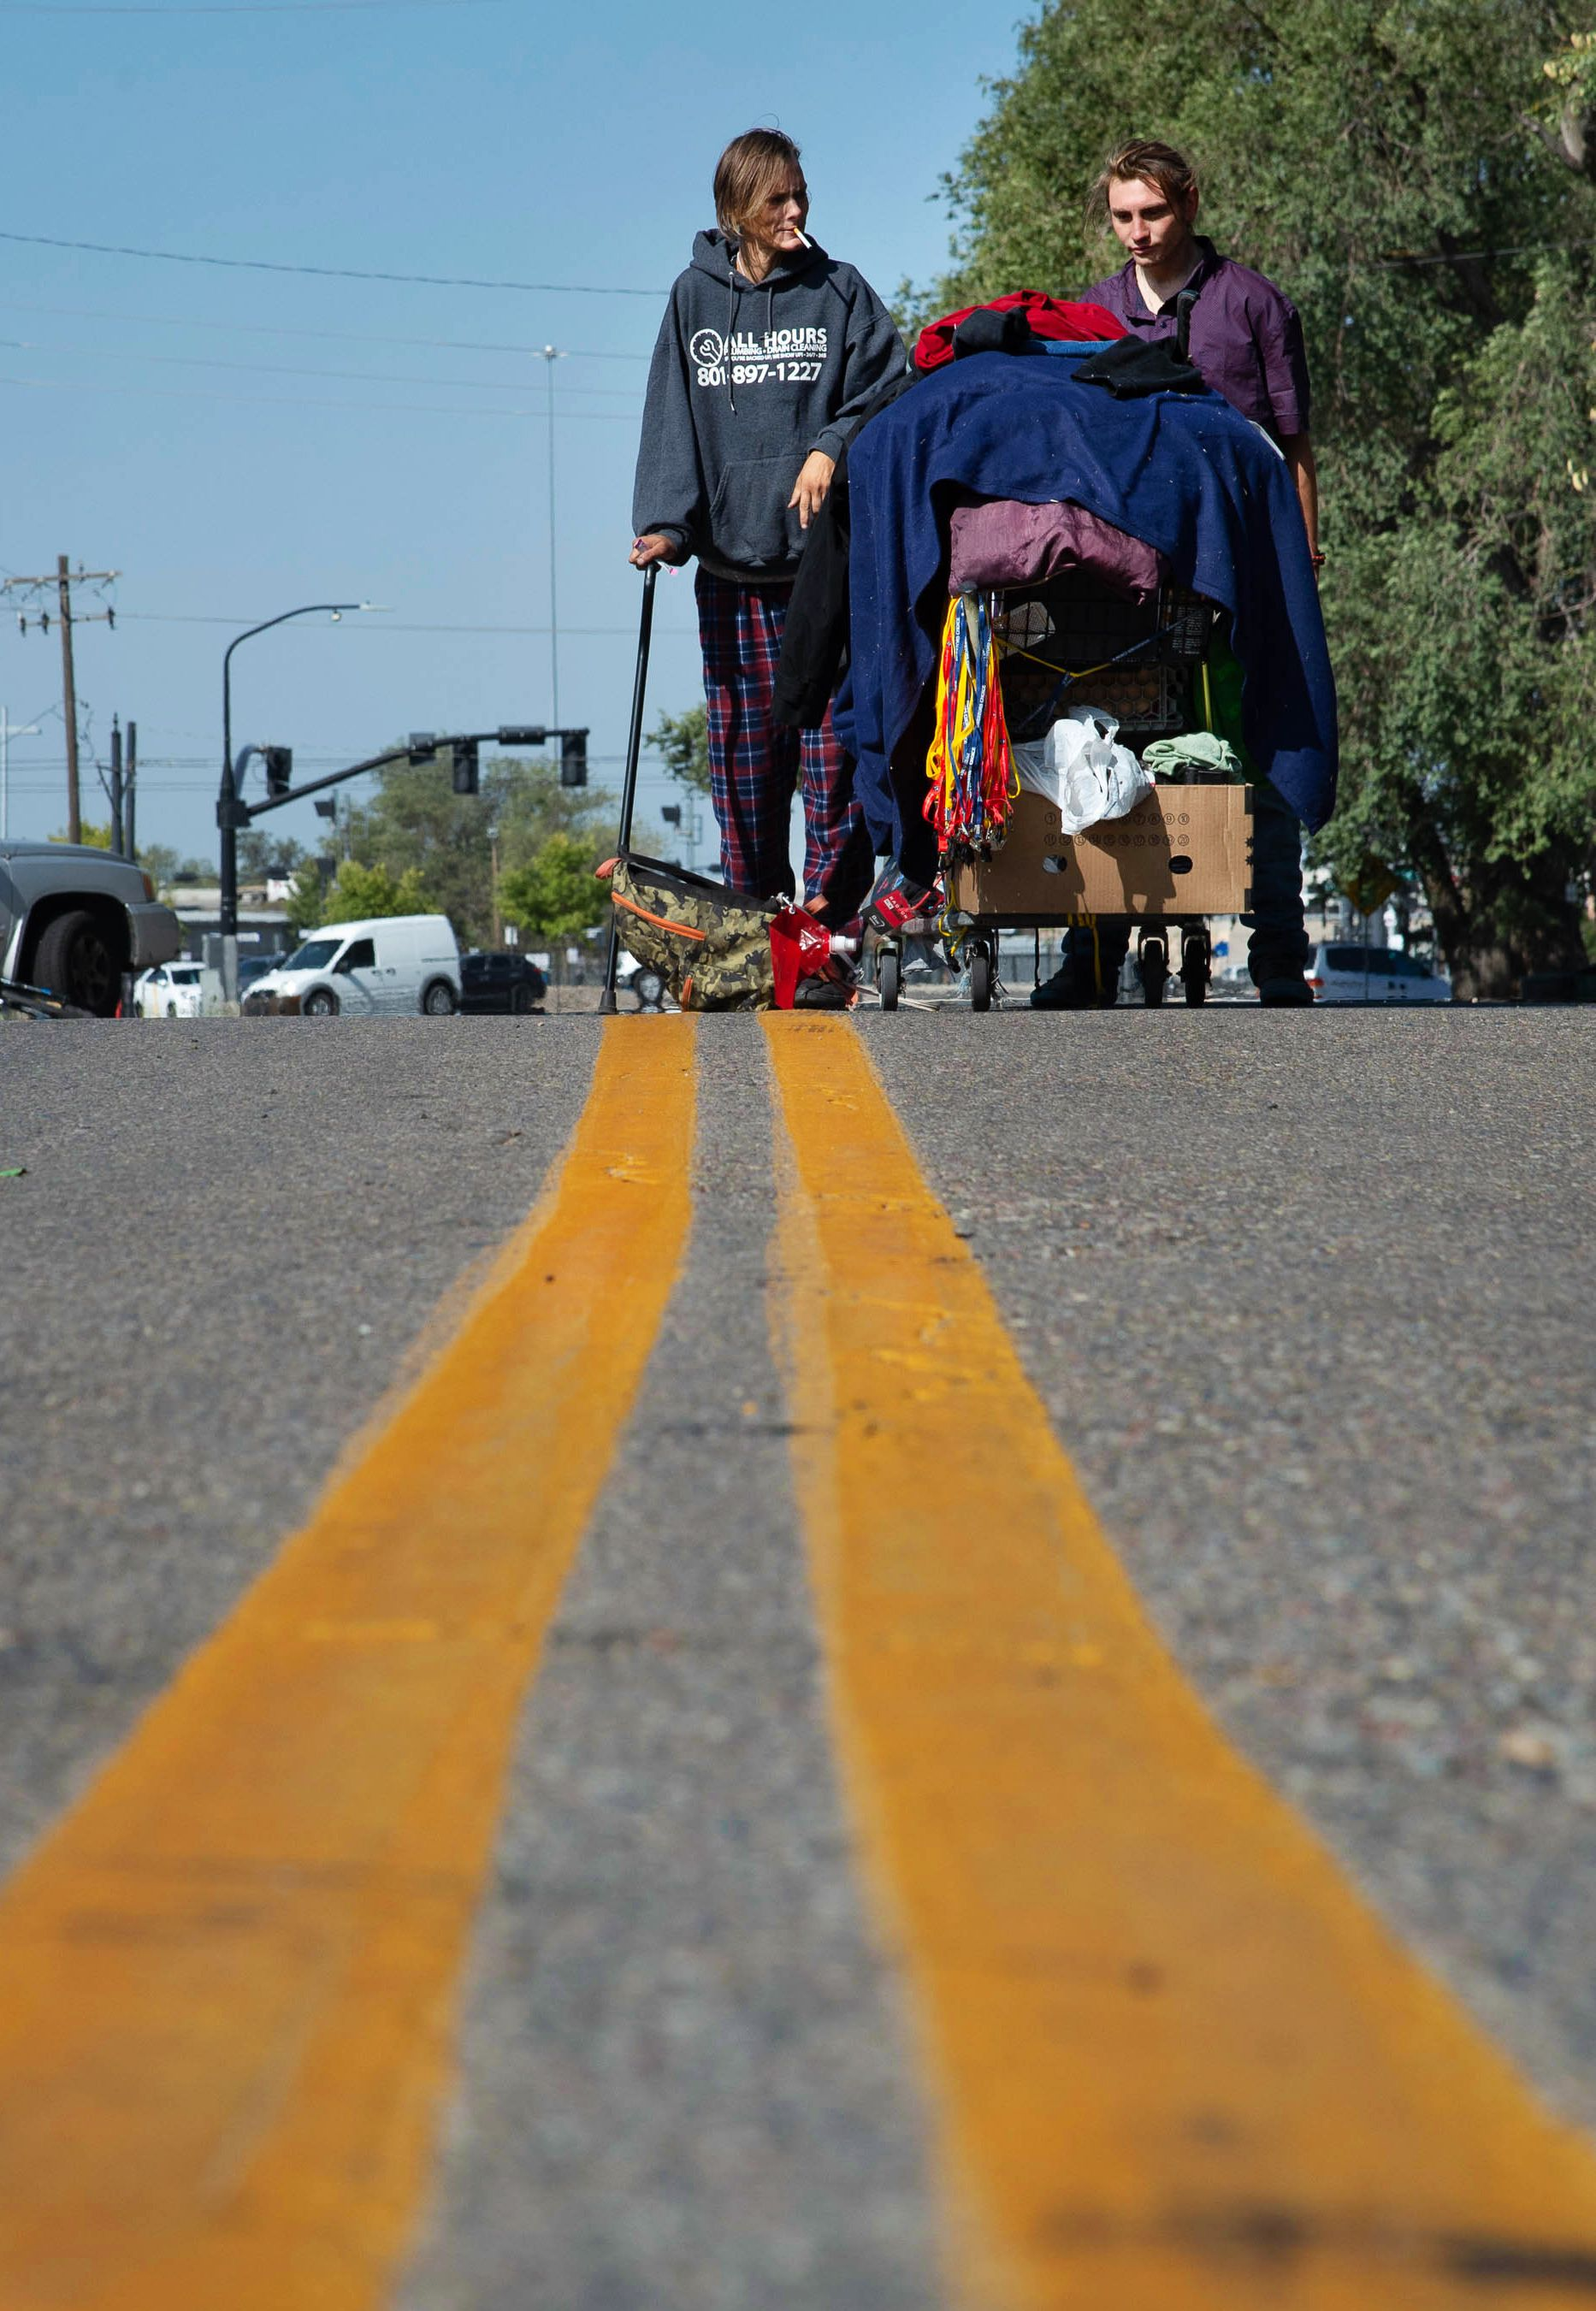 (Francisco Kjolseth  |  The Salt Lake Tribune) People prepare themselves for plans by the Salt Lake County Health Department to clean up homeless camps on Thursday, Sept. 10, 2020, as they gather their belongings near the former Road Home Shelter.